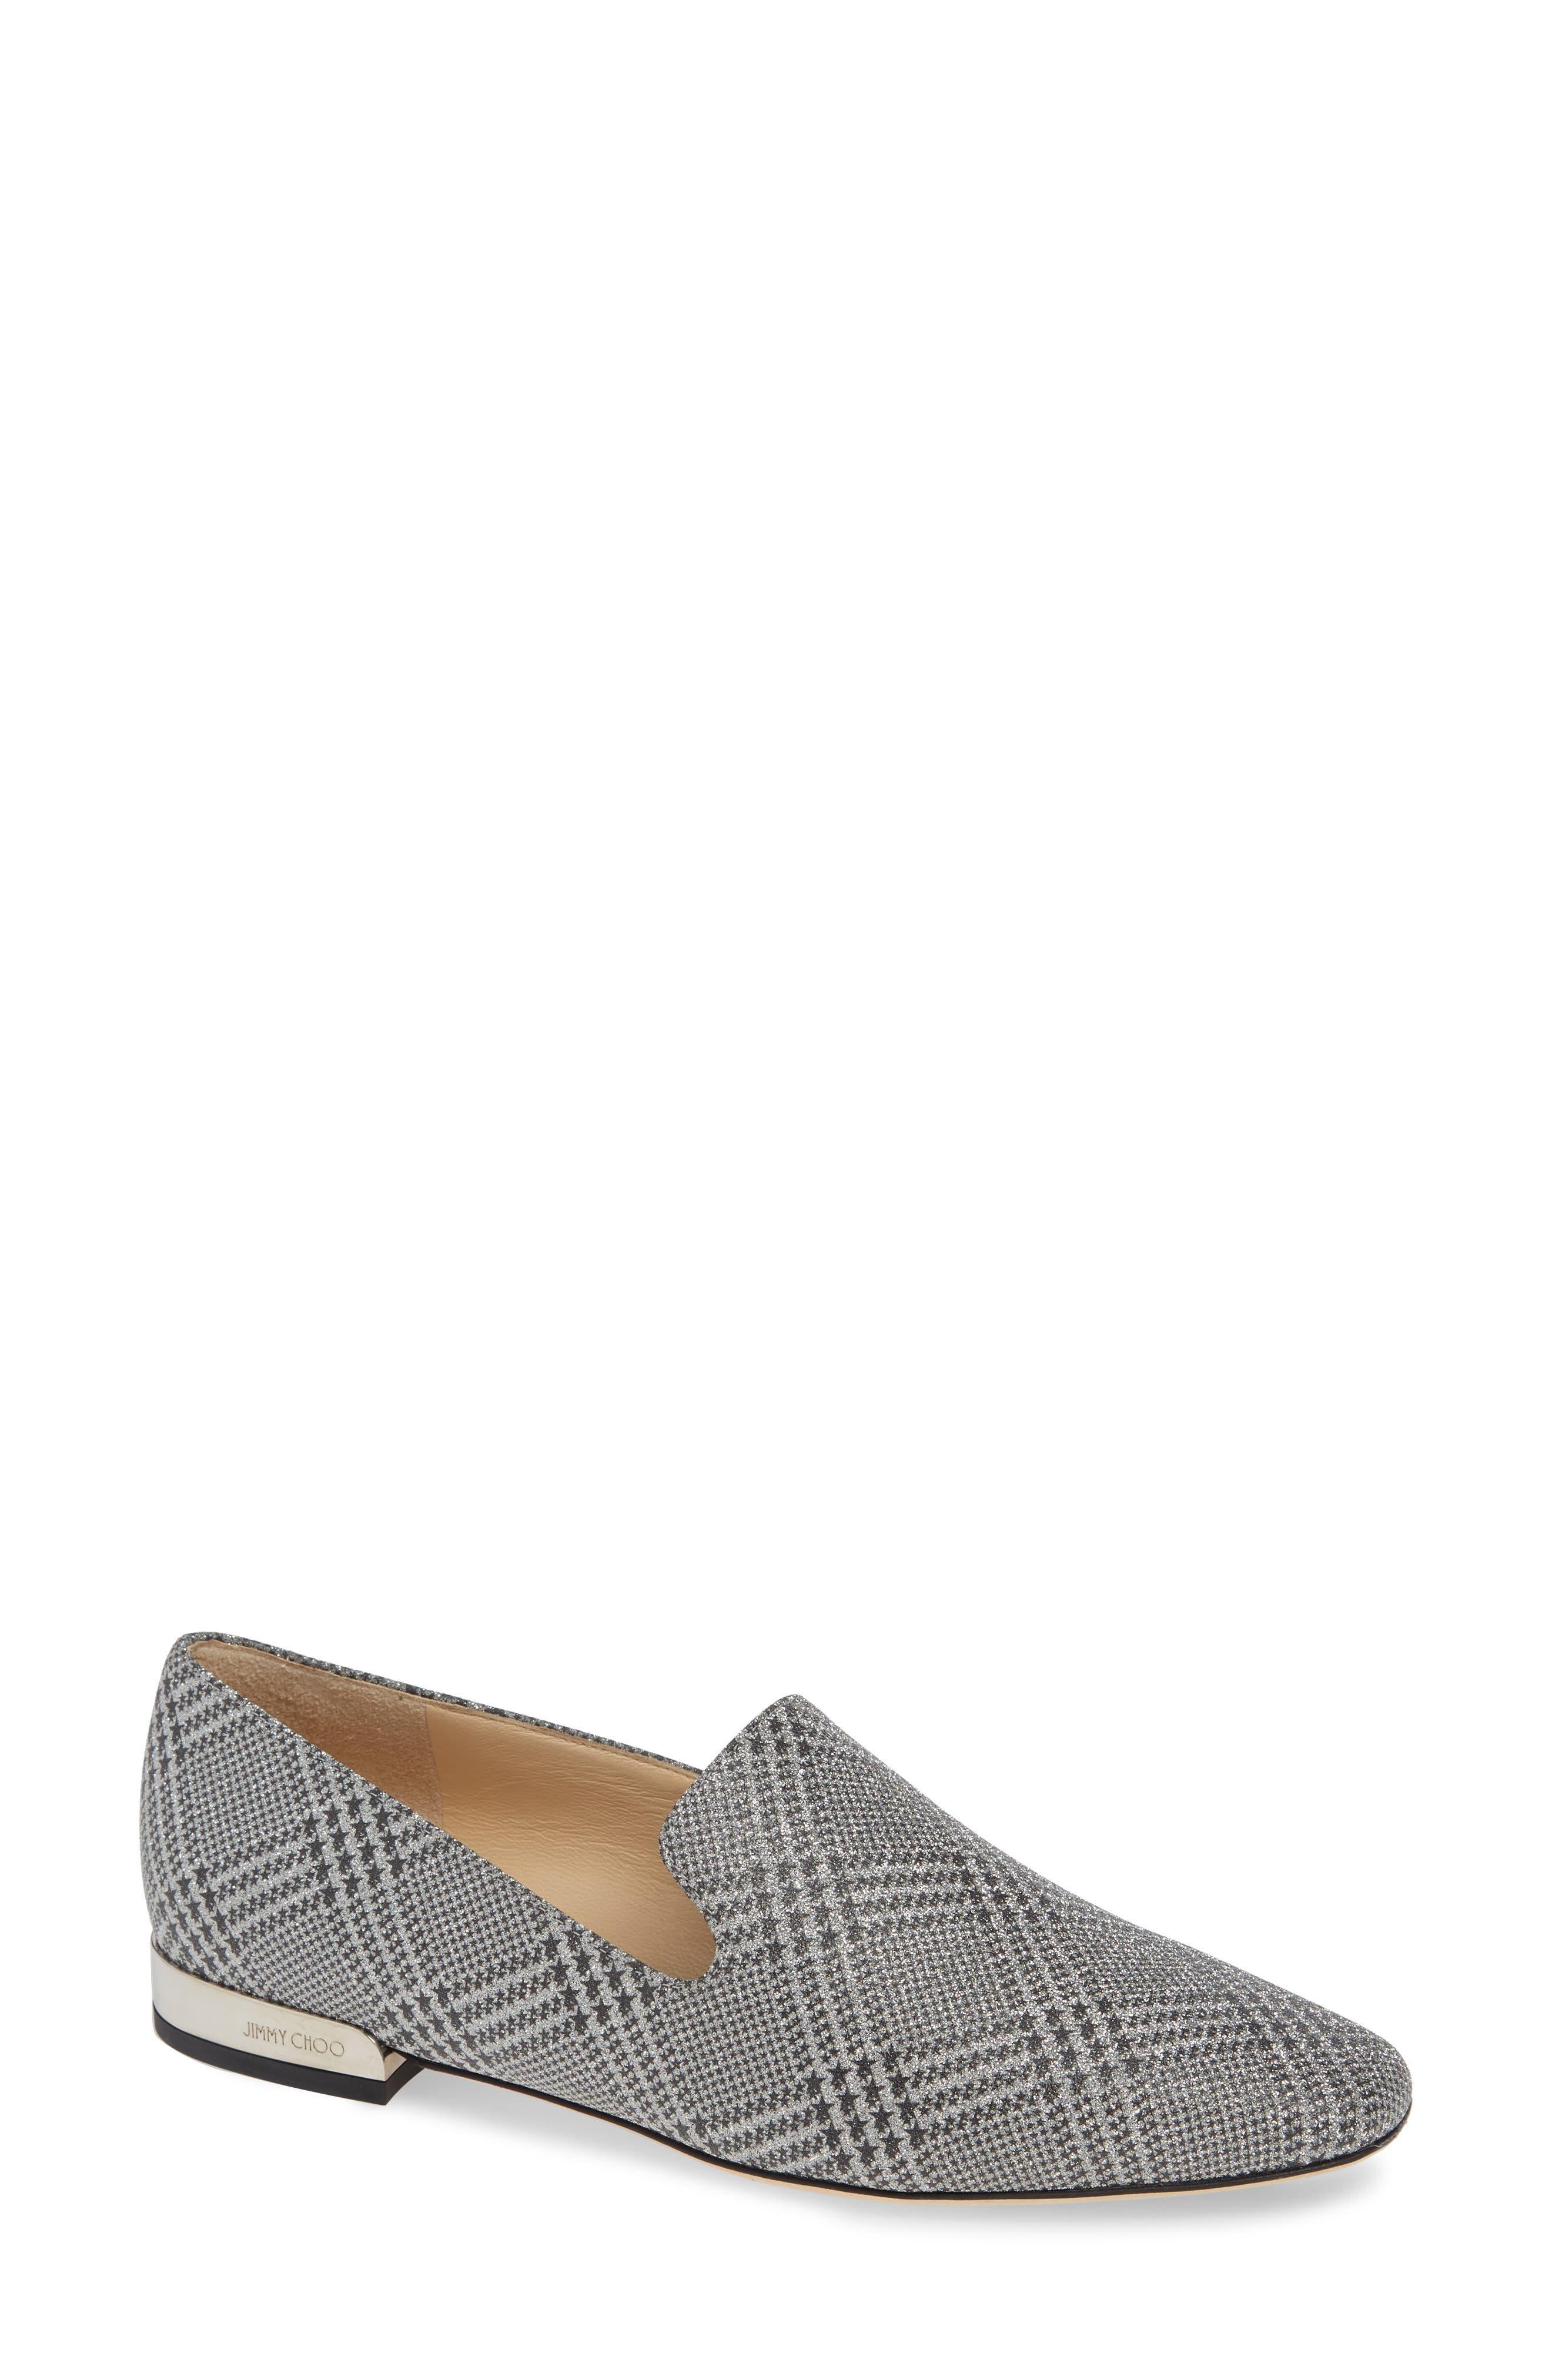 Jaida Loafer, Main, color, SILVER